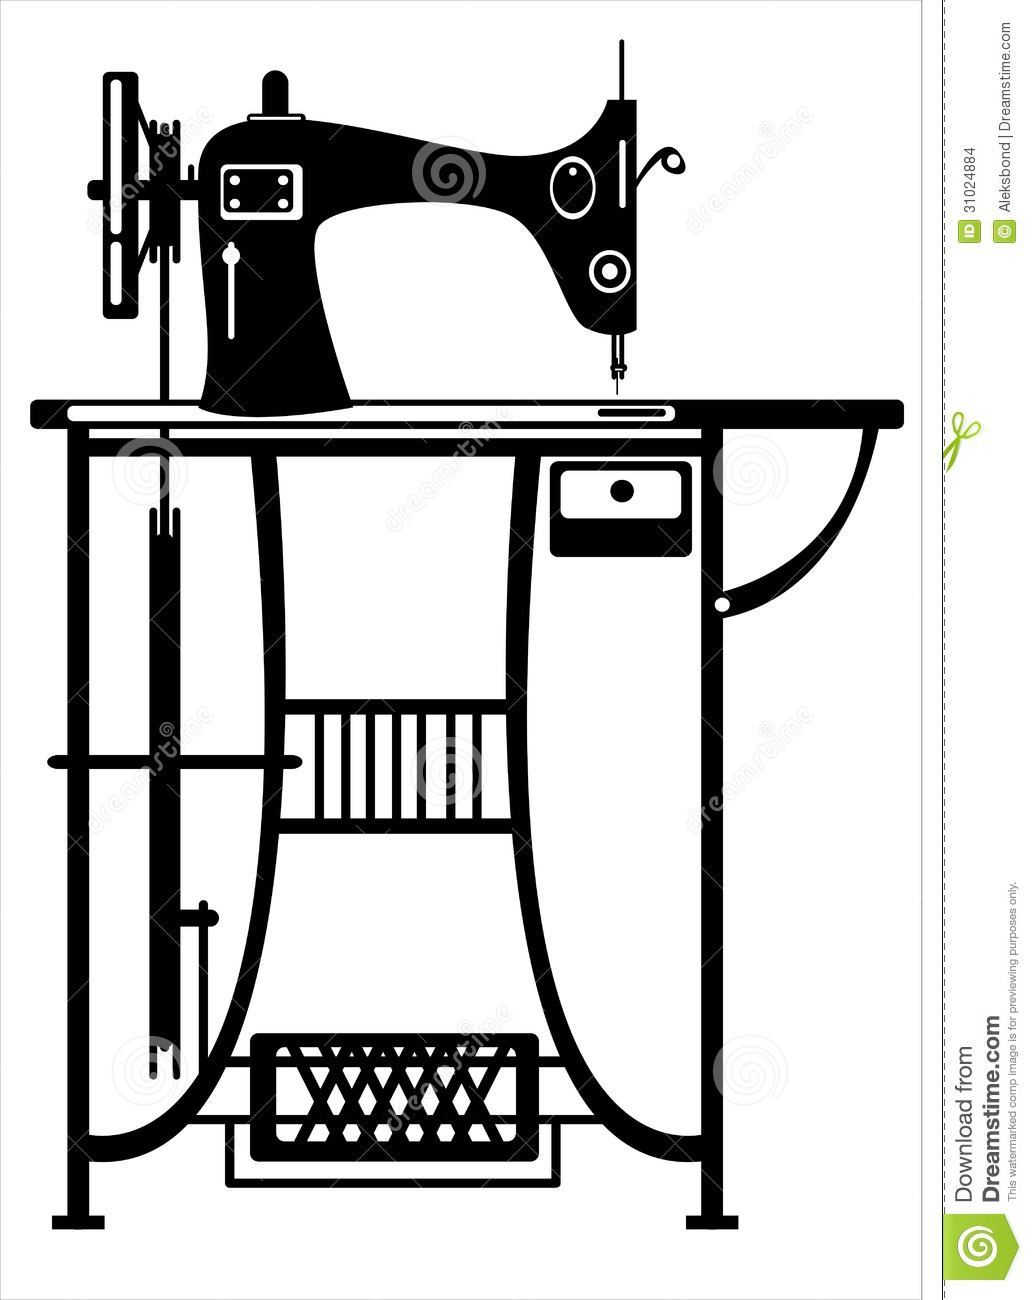 759 Sewing Machine free clipart.